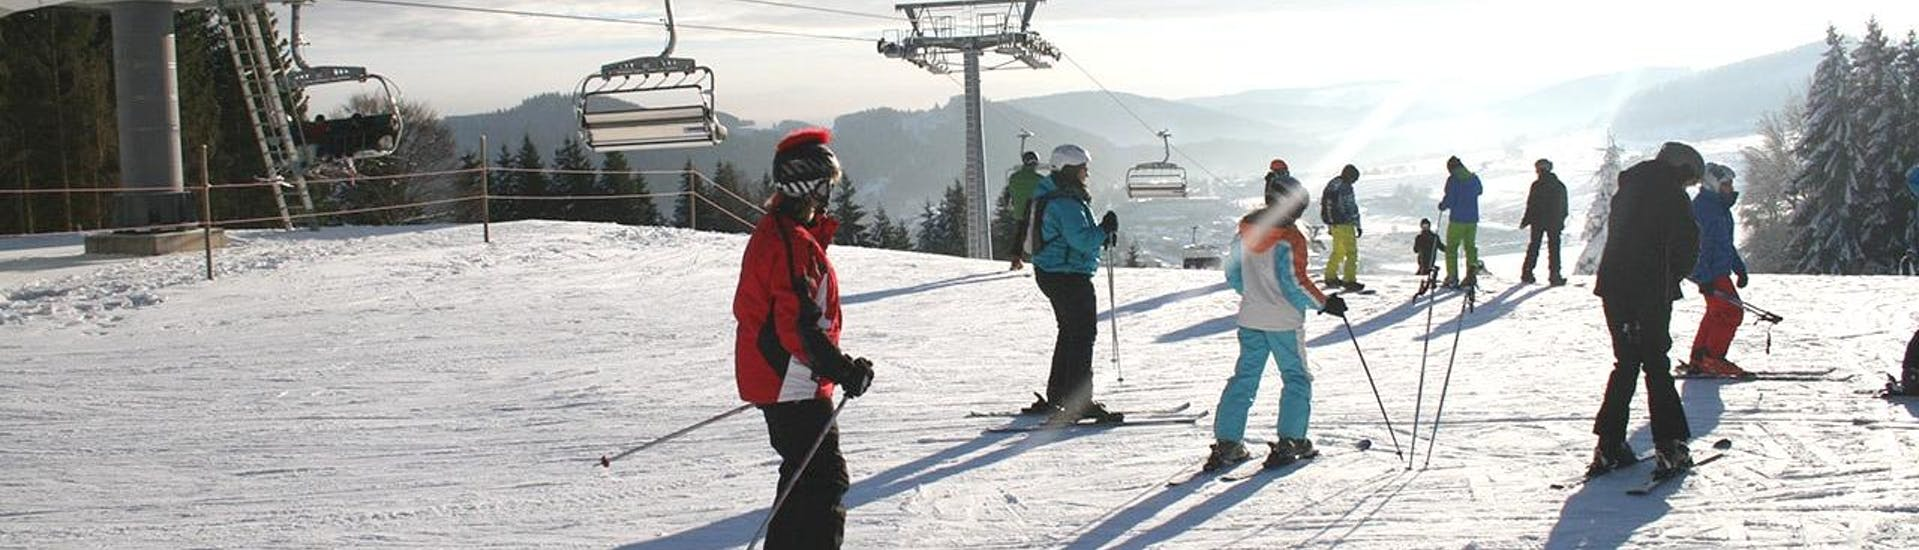 During the Ski Lessons for Adults - All Levels - Half Day, adults are learning in a group the basics of skiing under the guidance of an experienced ski instructor from the ski school Skischule Snow & Bike Factory Willingen.